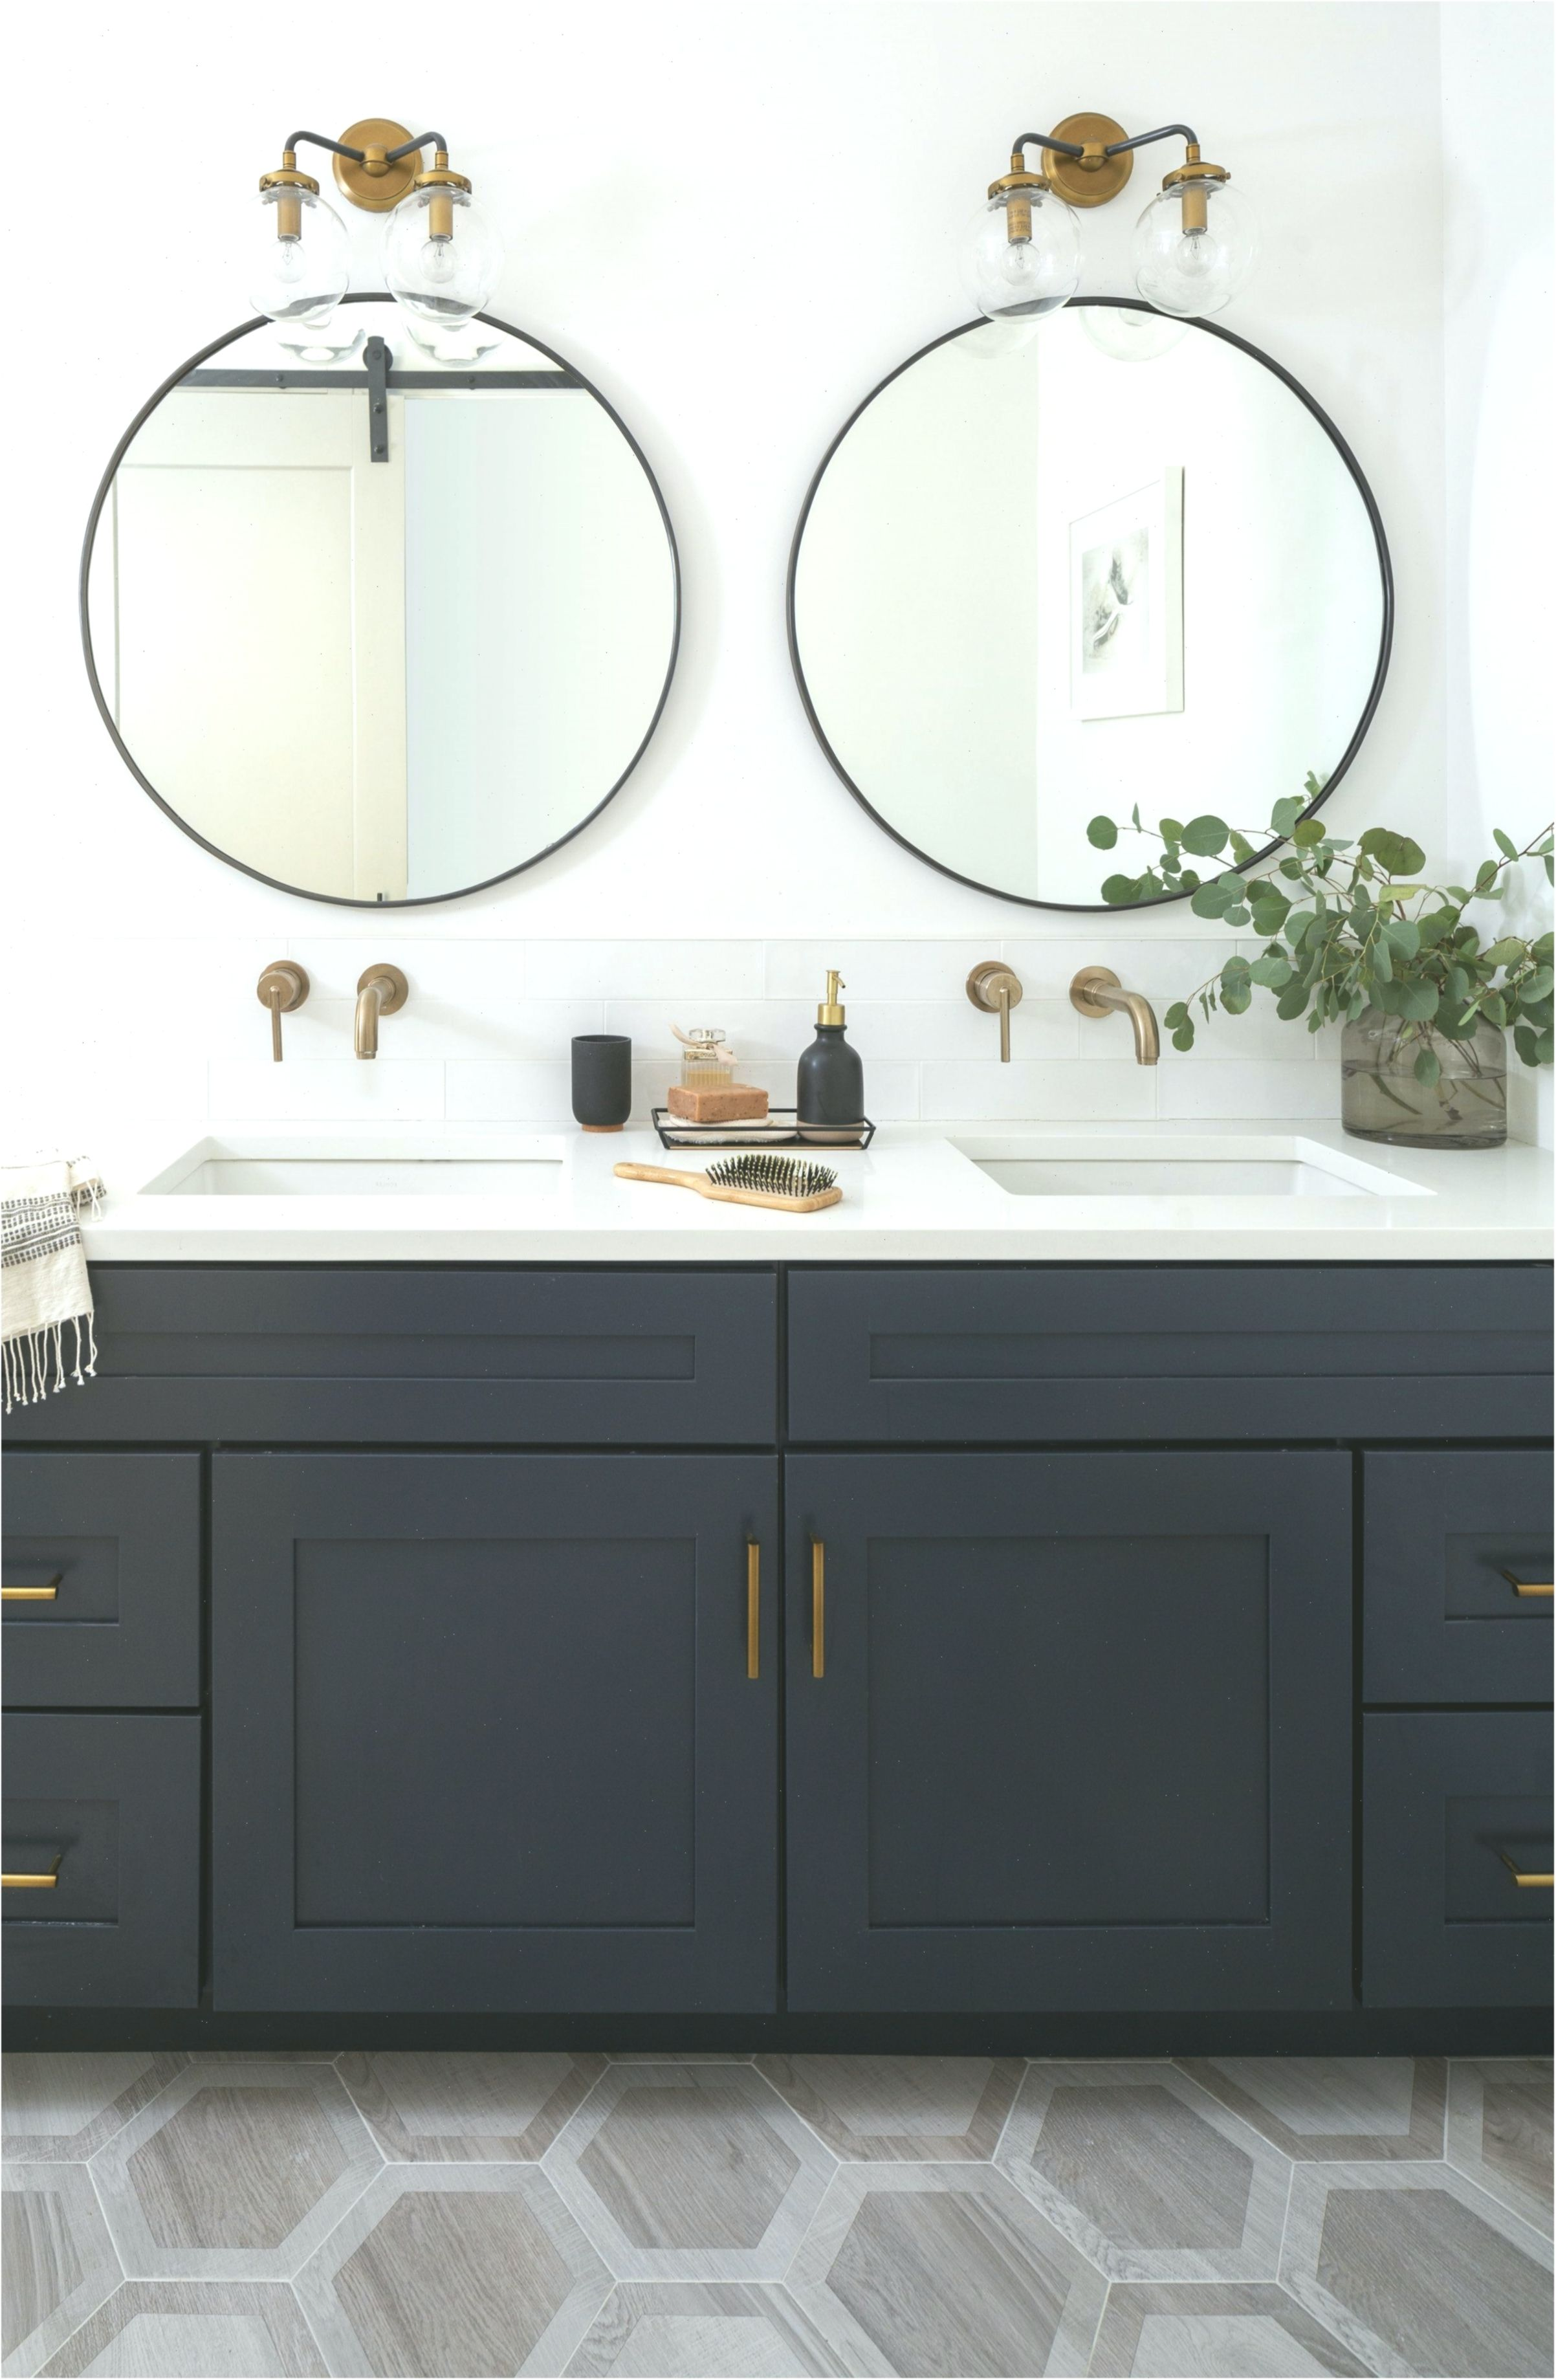 5 Most Popularity Double Sink Bathroom Vanity Ideas In 2020 Doppelwaschbecken Waschtisch Ideen